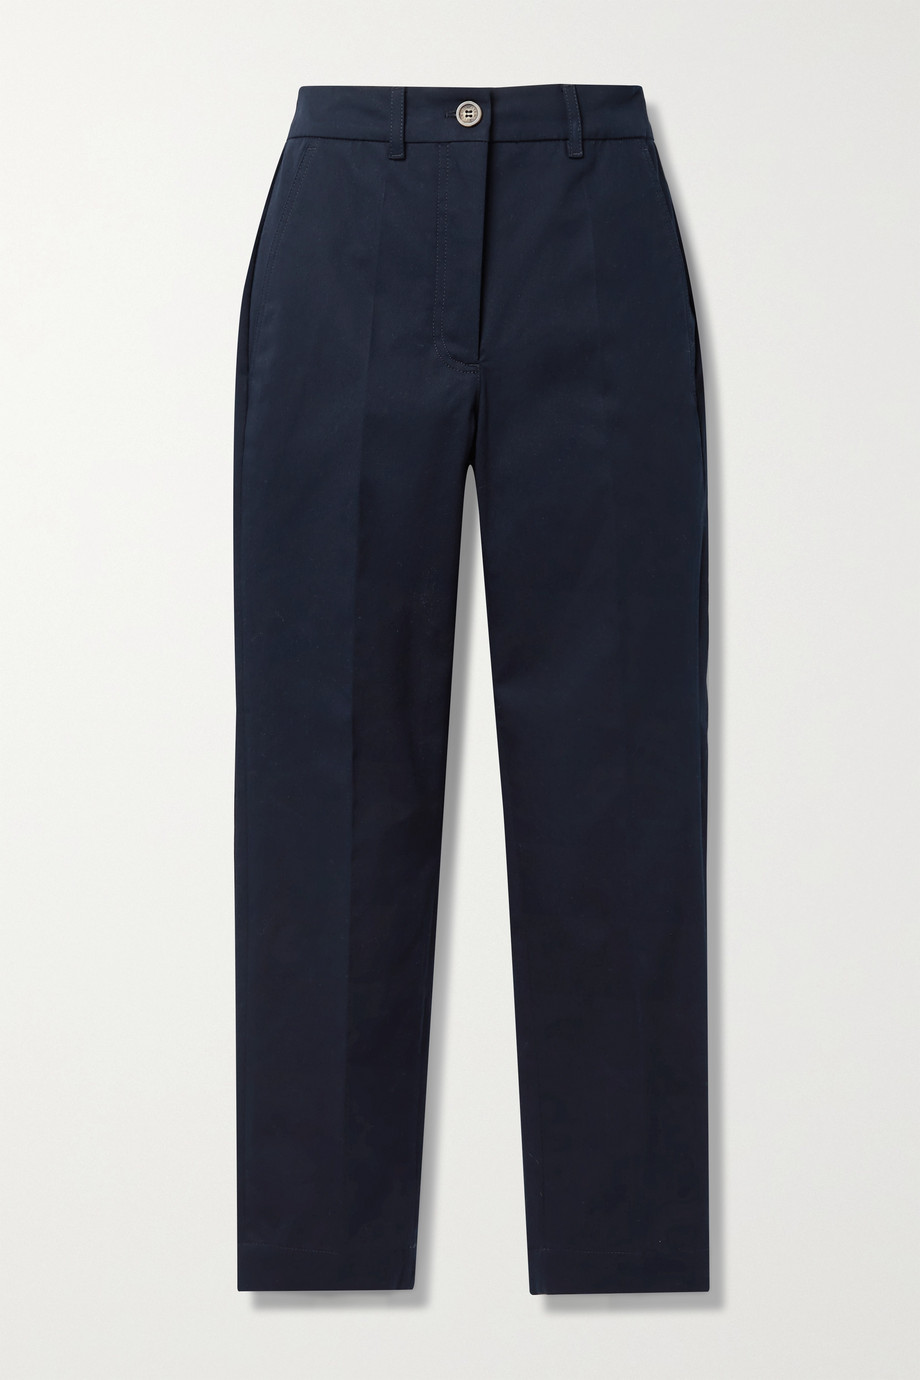 Moncler Cotton-blend twill tapered pants